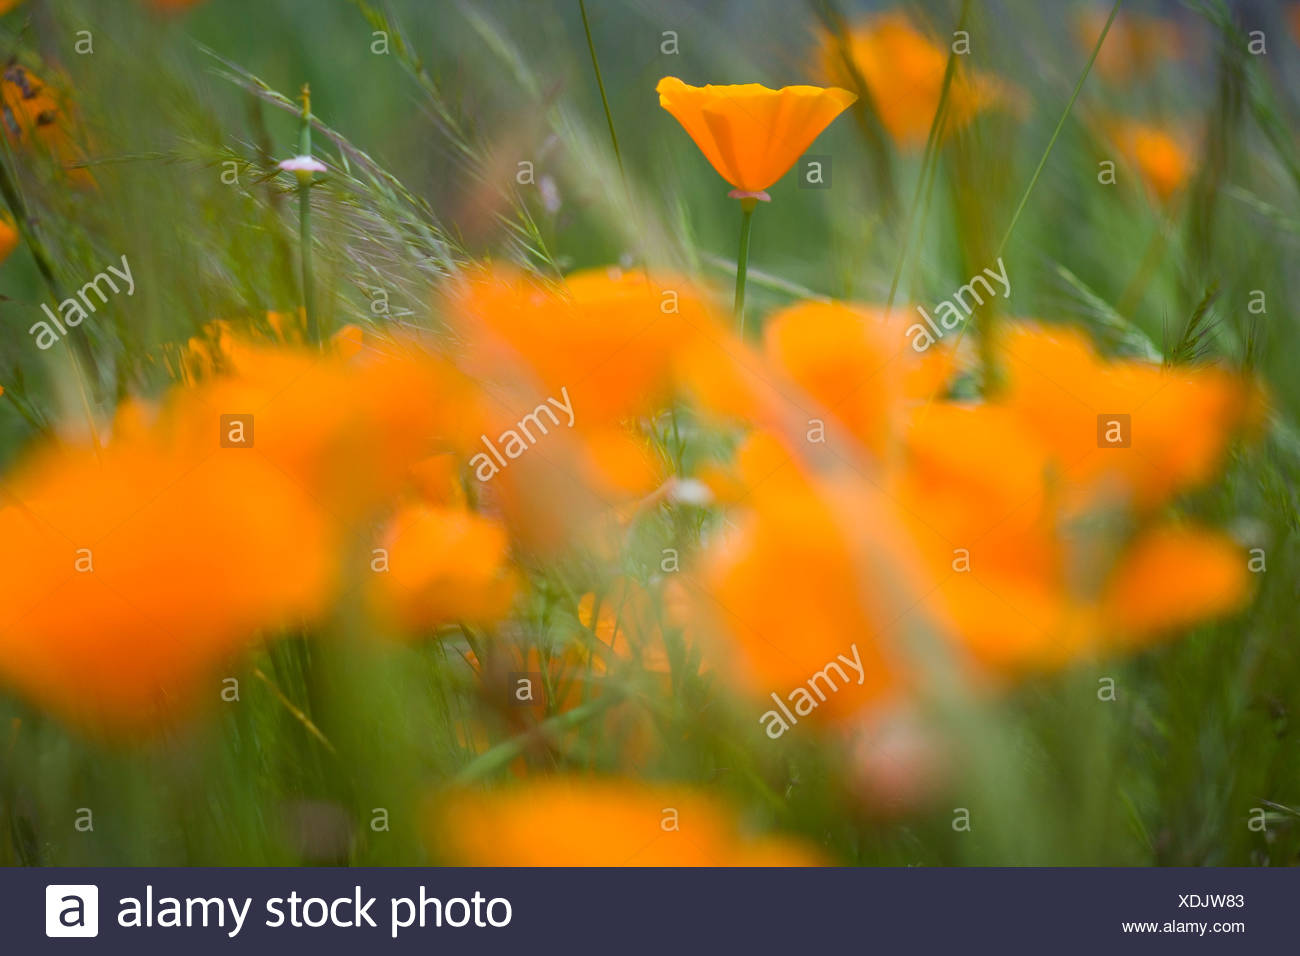 Close Up Of Orange Poppy Flowers Stock Photo 283771379 Alamy